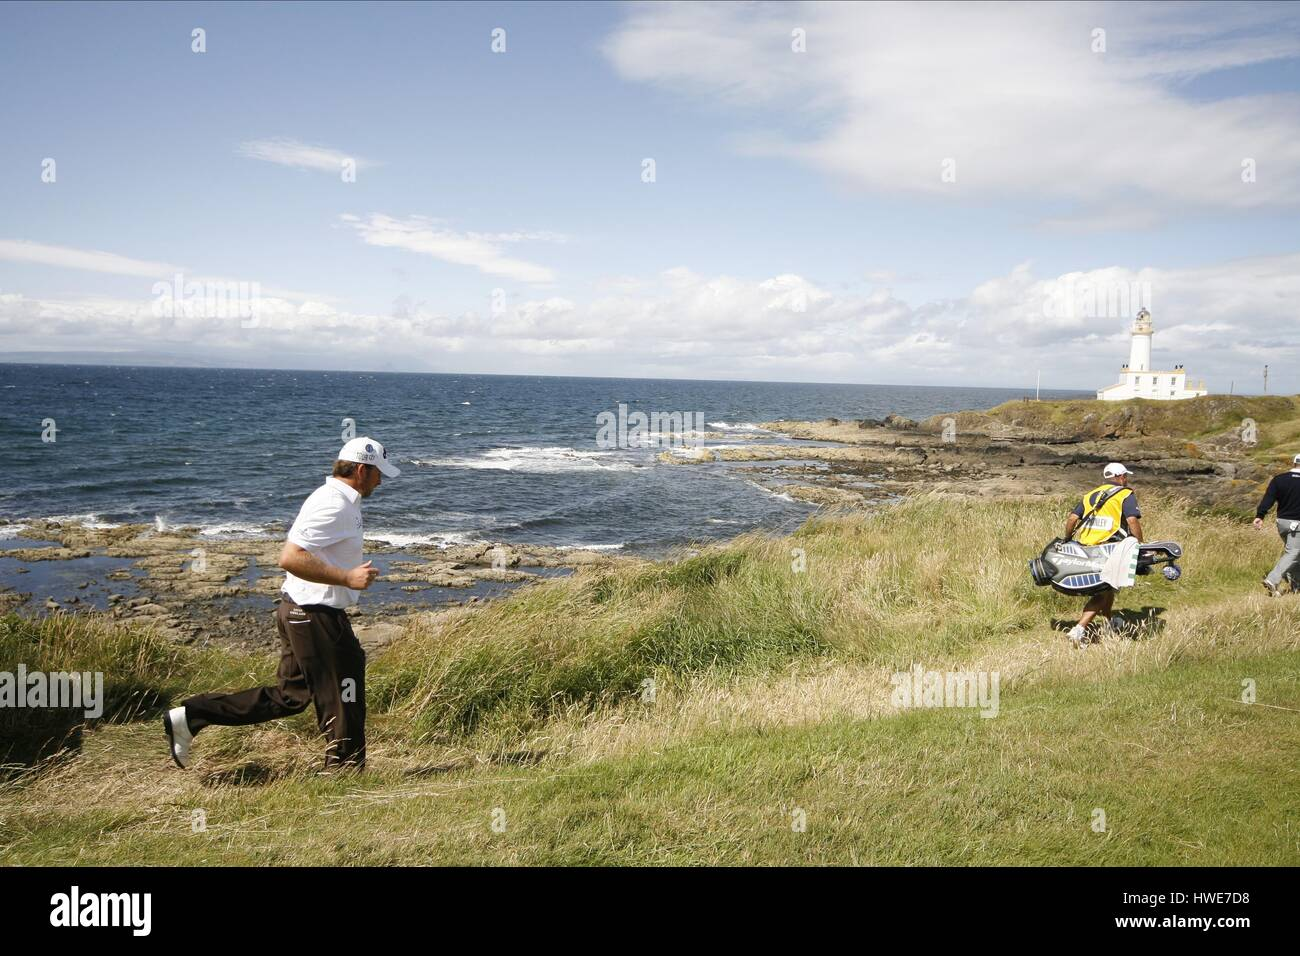 GRAEME MCDOWELL ON THE 9TH THE OPEN TURNBERRY 2009 TURNBERRY AYRSHIRE SCOTLAND 19 July 2009 - Stock Image